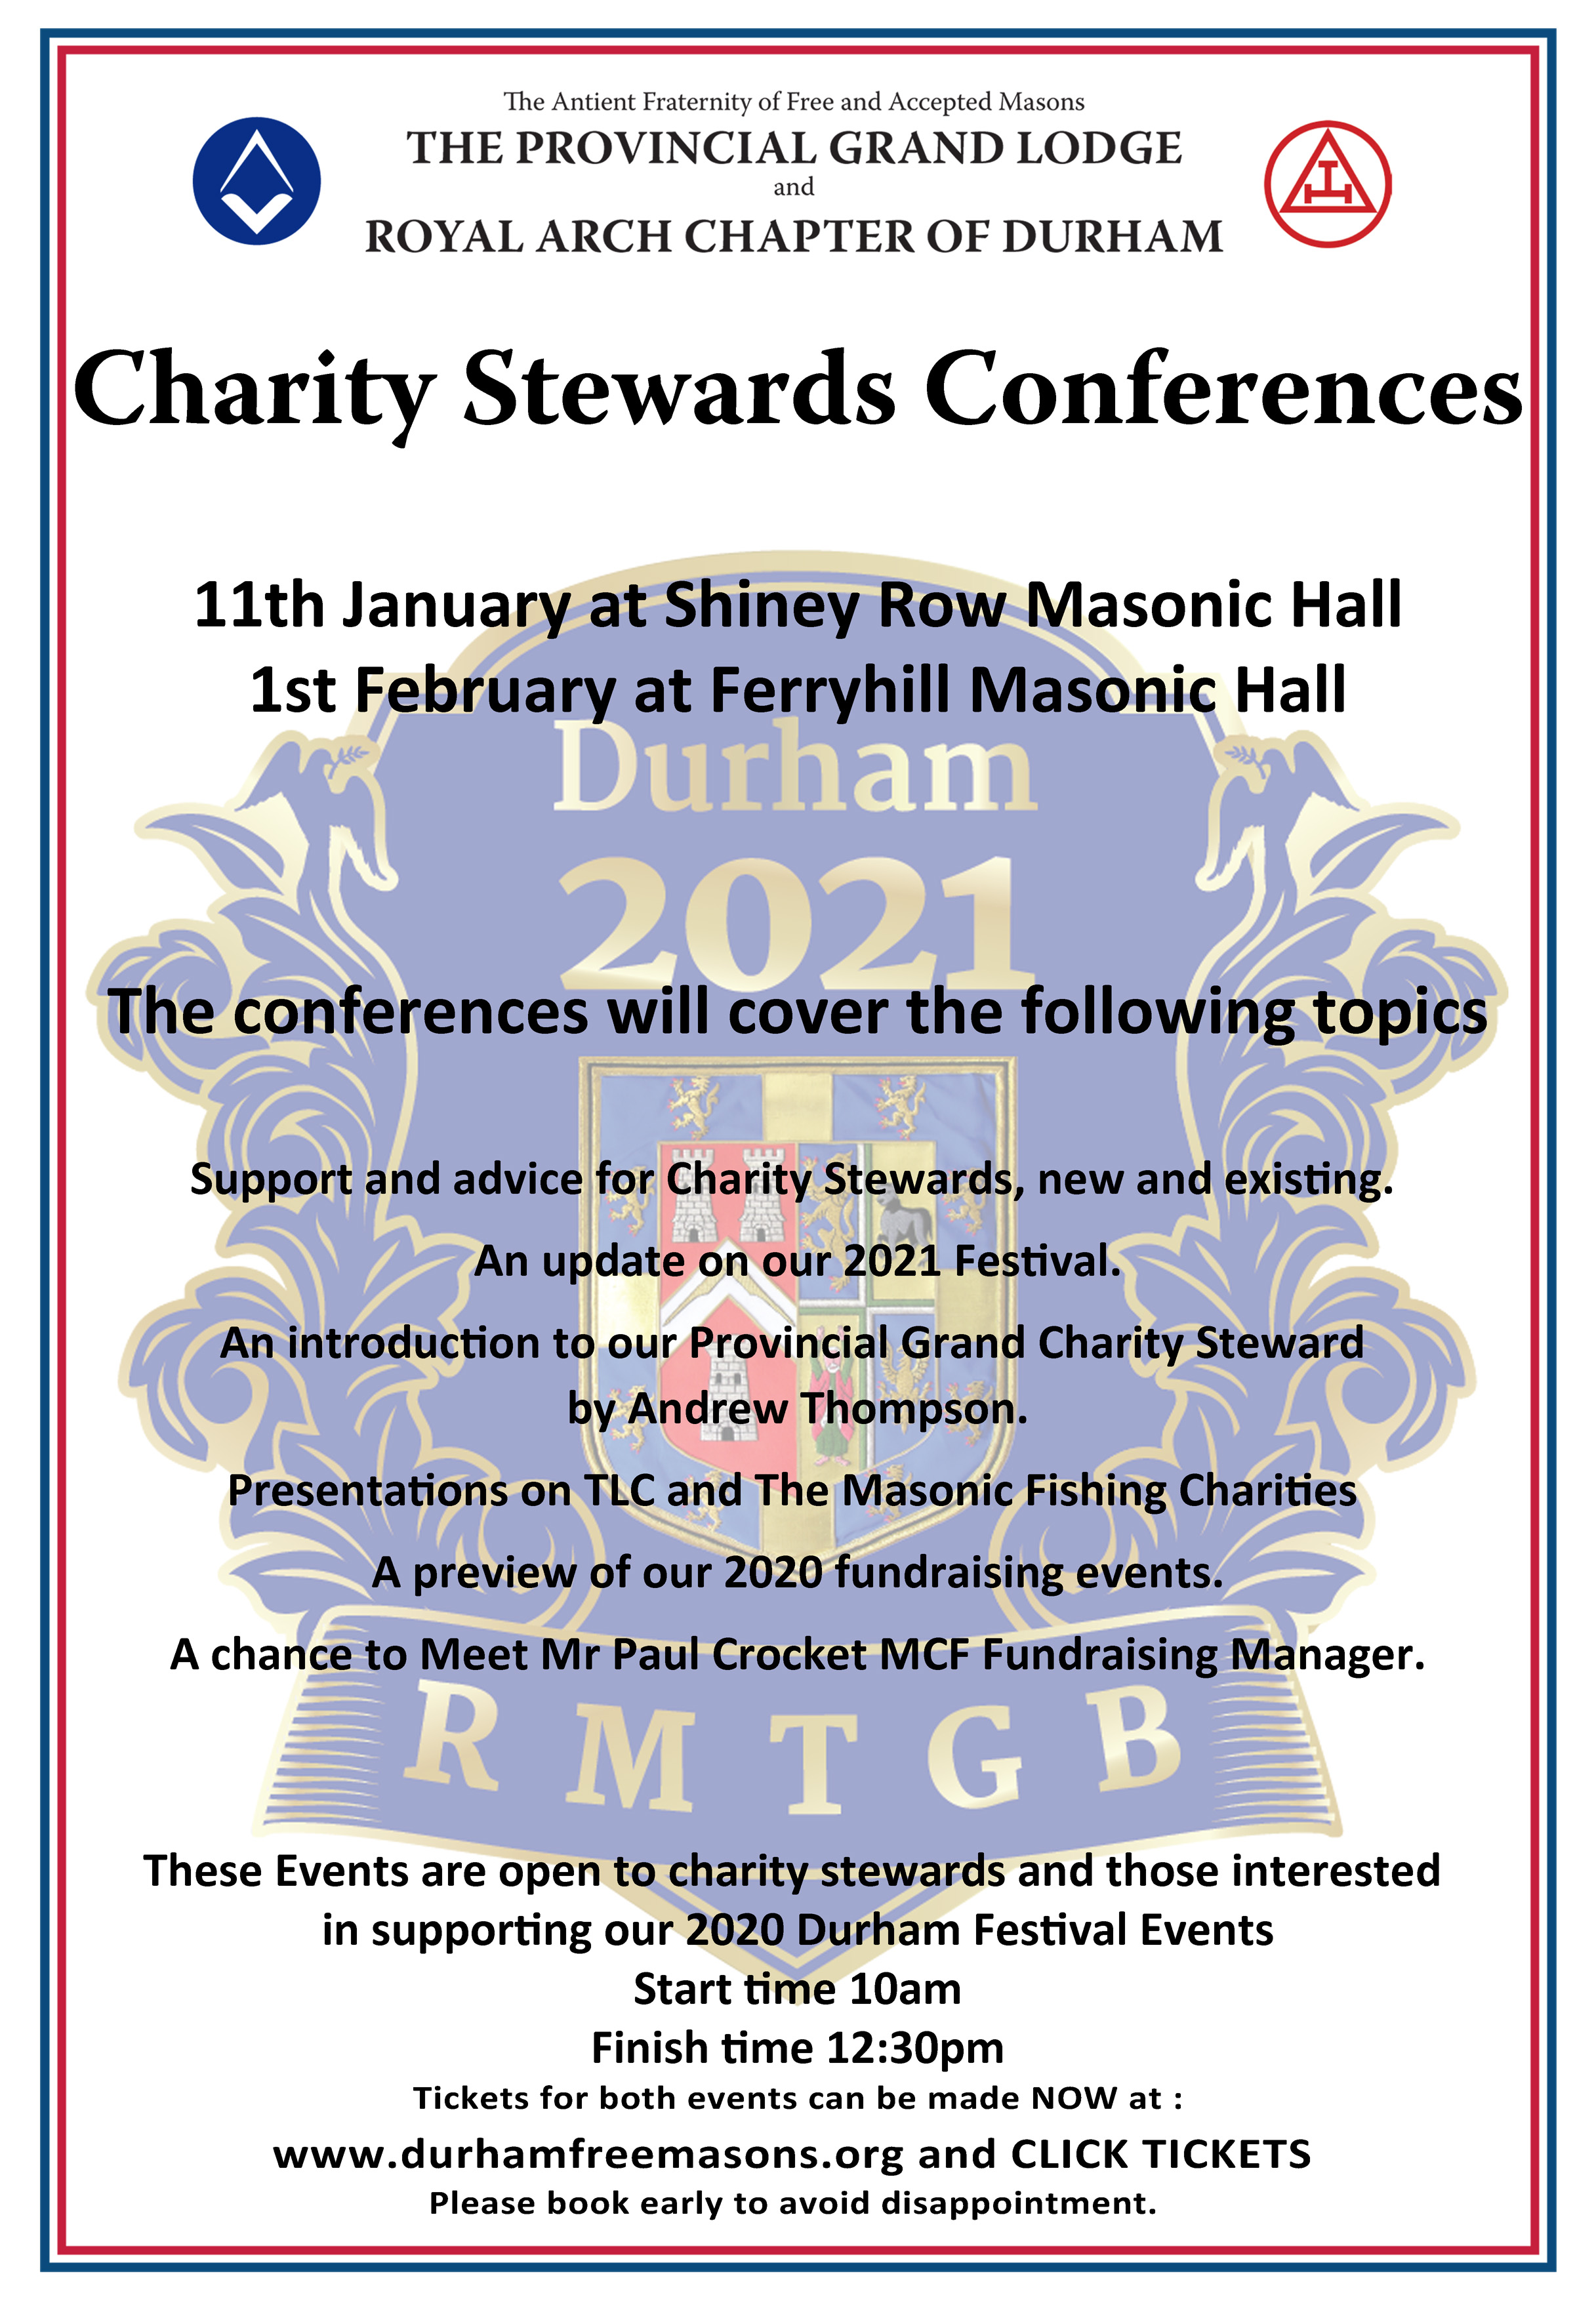 Charity Stewards Conference